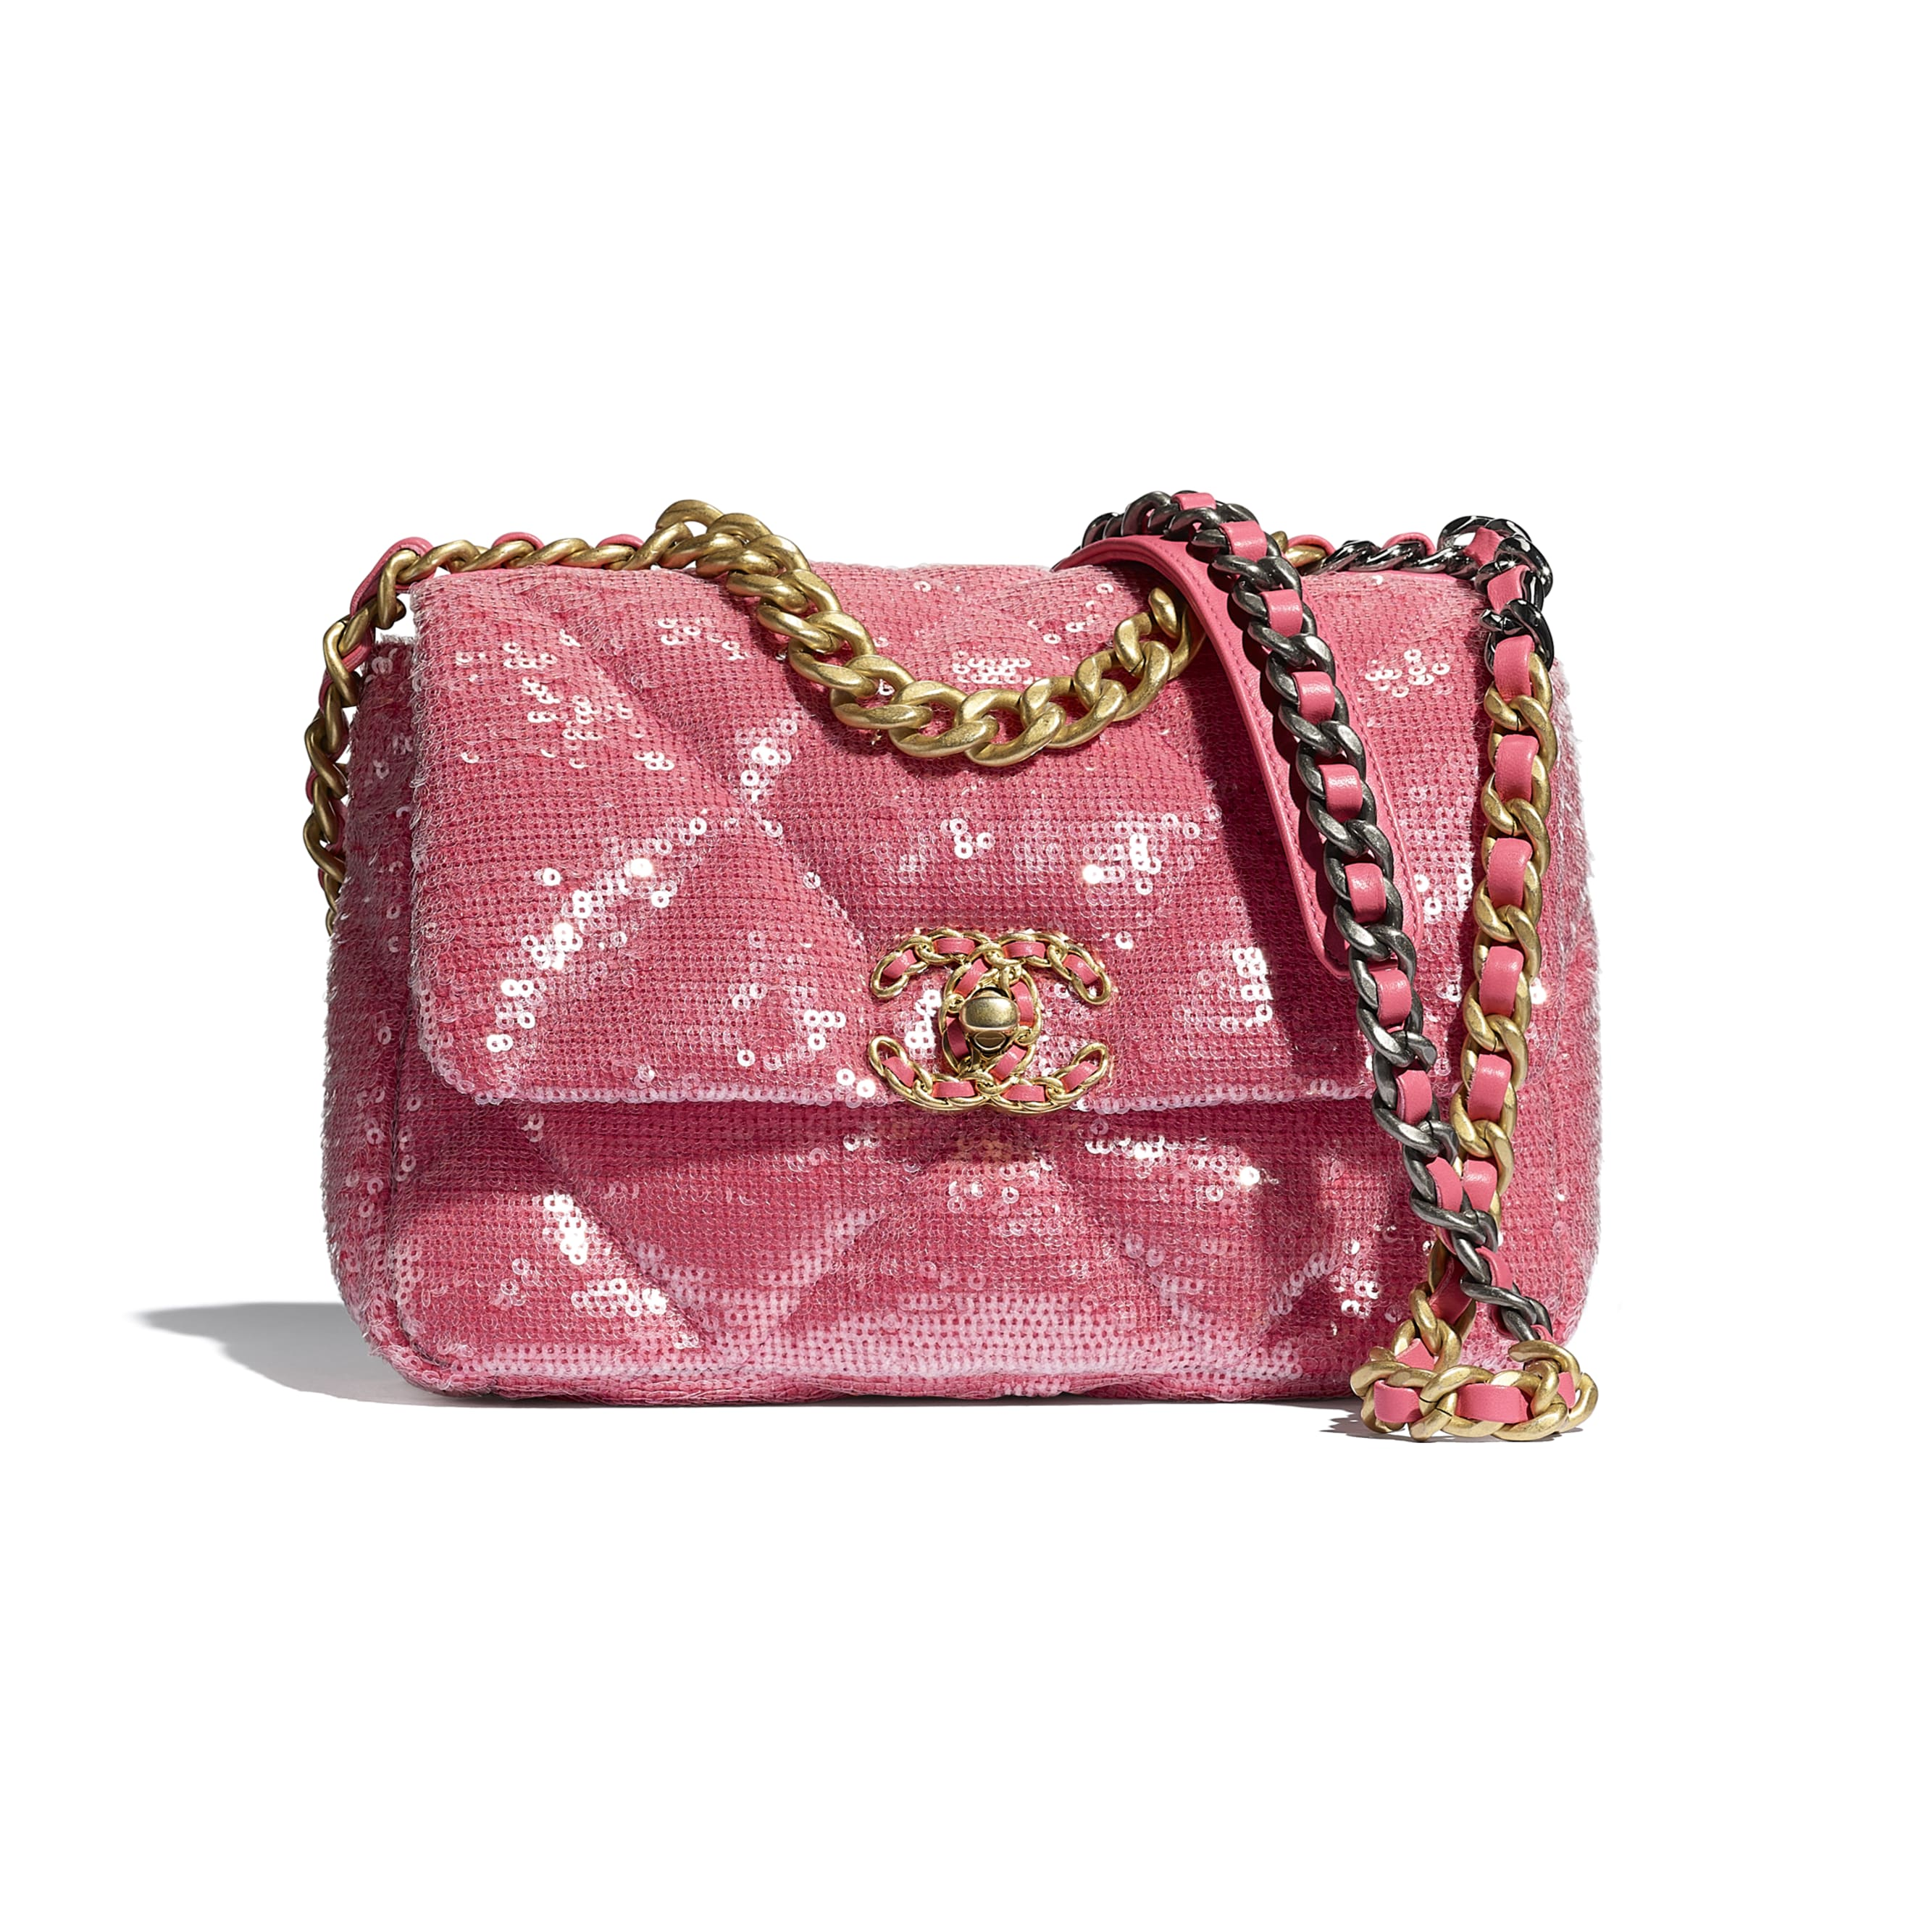 CHANEL 19 Handbag - Coral - Sequins, calfksin, silver-tone & gold-tone metal - CHANEL - Default view - see standard sized version